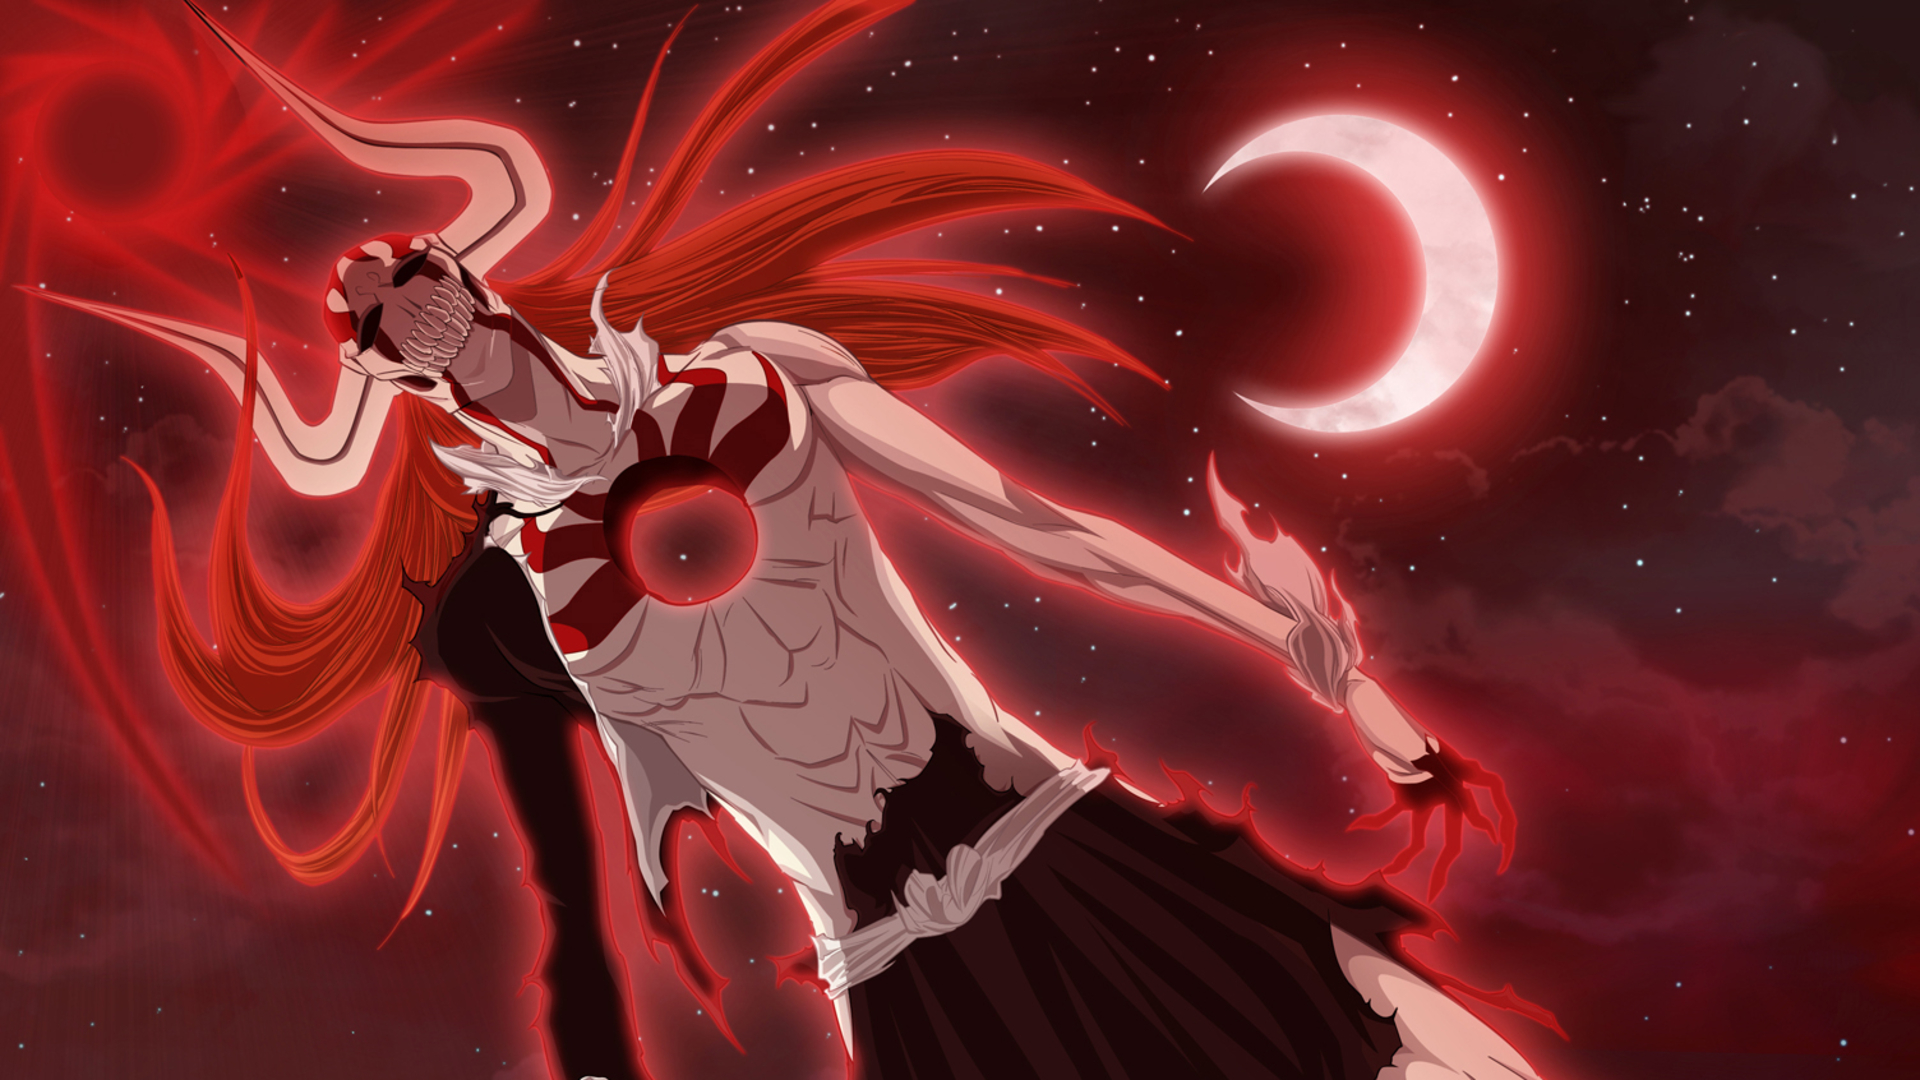 Tags Anime BLEACH Kurosaki Ichigo Hollow Mask HD Wallpaper Facebook